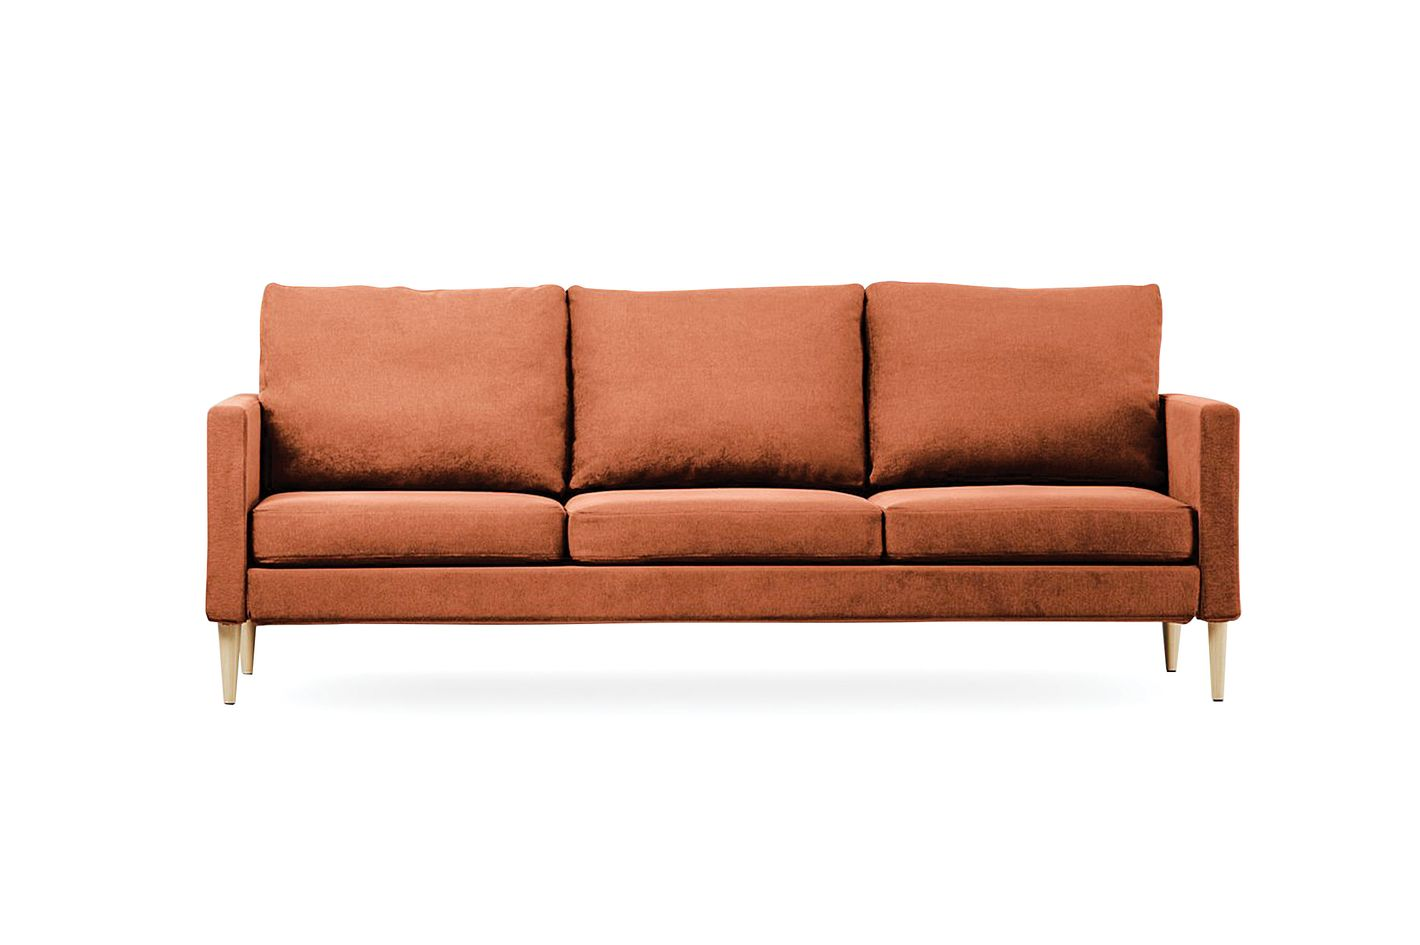 10 best flat pack sofas campaign joybird burrow 2019 rh nymag com assemble yourself sleeper sofa